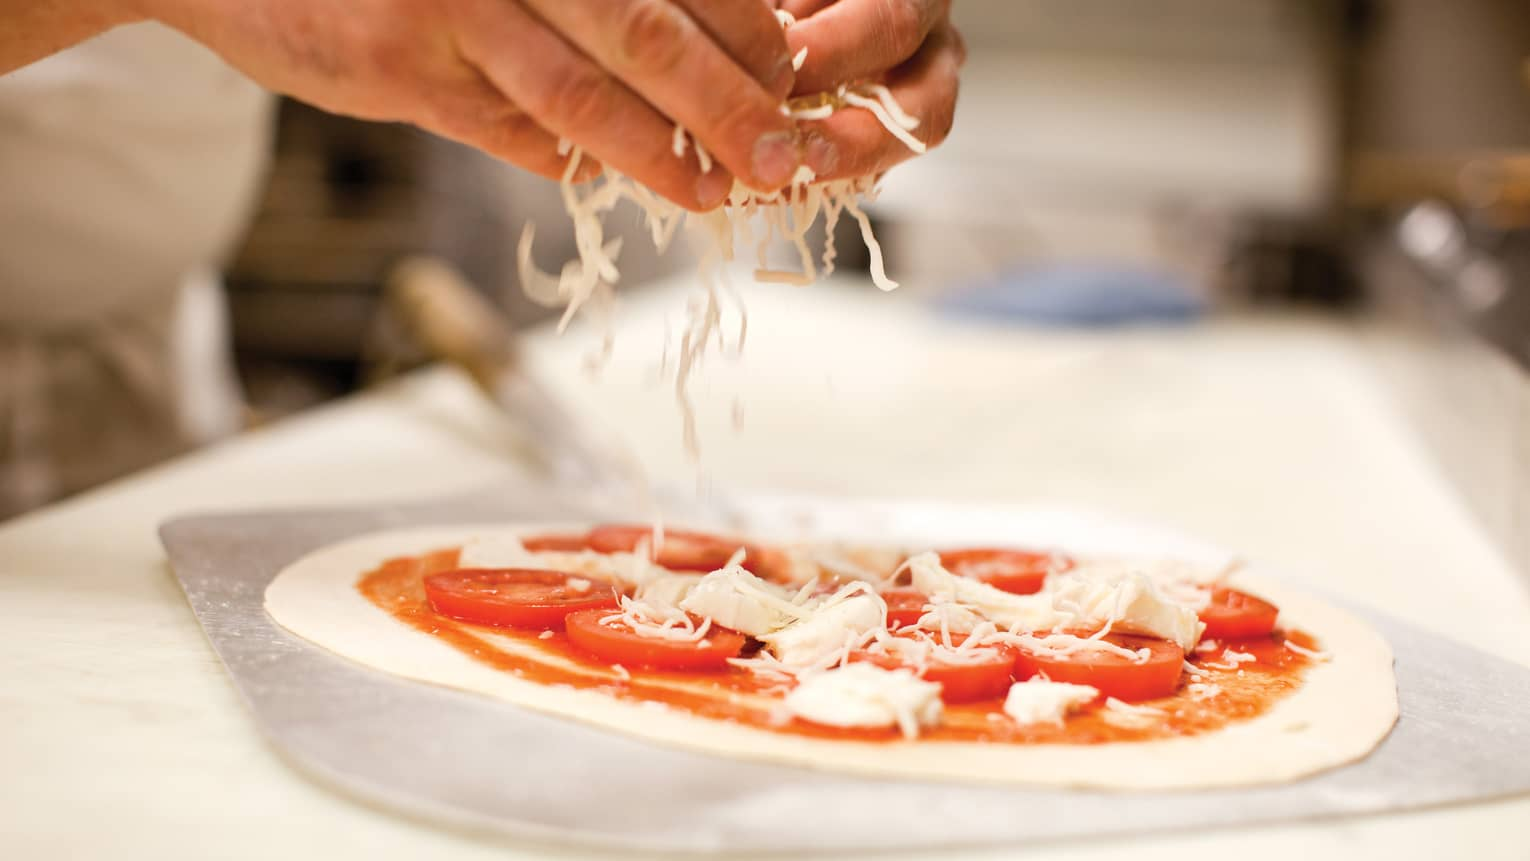 Close-up of hands sprinkling mozzarella cheese on raw personal size pizza